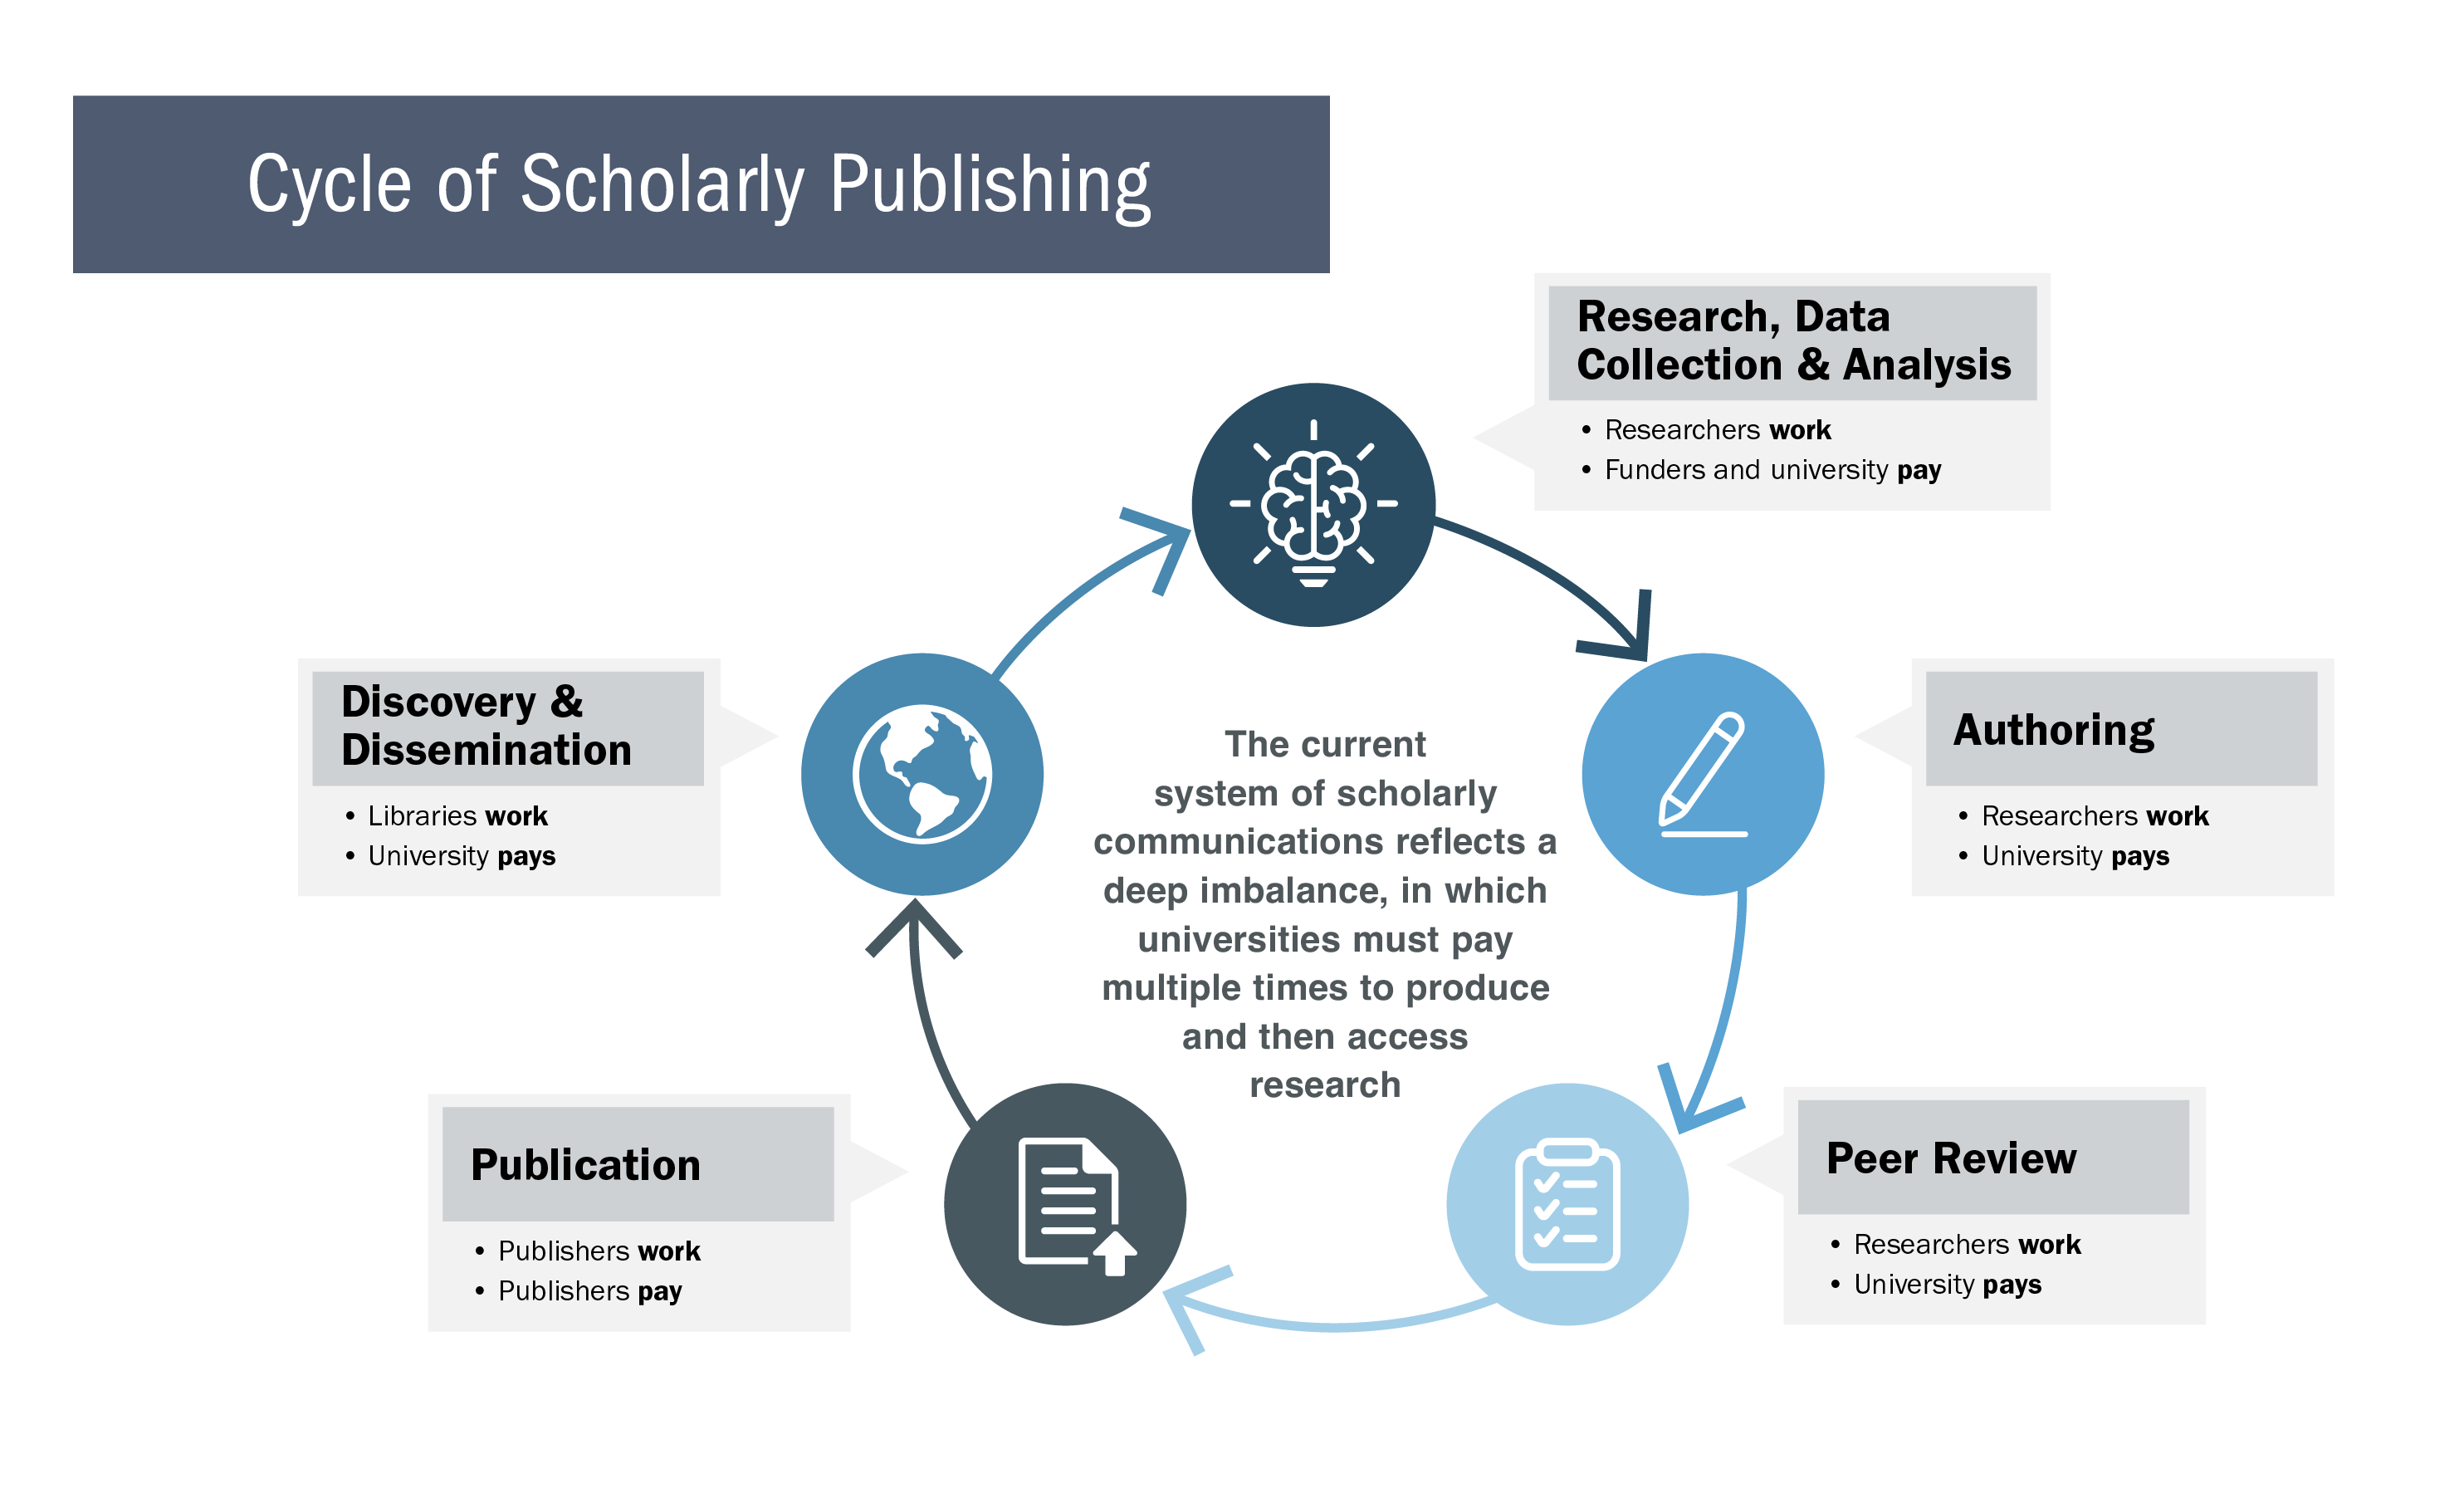 The current system of scholarly communications reflects a deep imbalance, in which universities must pay multiple times to produce and then access research. The cycle of scholarly publishing includes research, data collection, and analysis, authoring, peer review, publication, and discovery and dissemination. In Research, data, and analysis stage, research do the work and funders and the university pays. In the authoring stage, researchers do the work and the university pays. In the peer review stage, researchers do the work and the university pays. In the publication stage, publishers do the work and the publishers pay. In the discovery and dissemination stage, libraries work and the university pays.